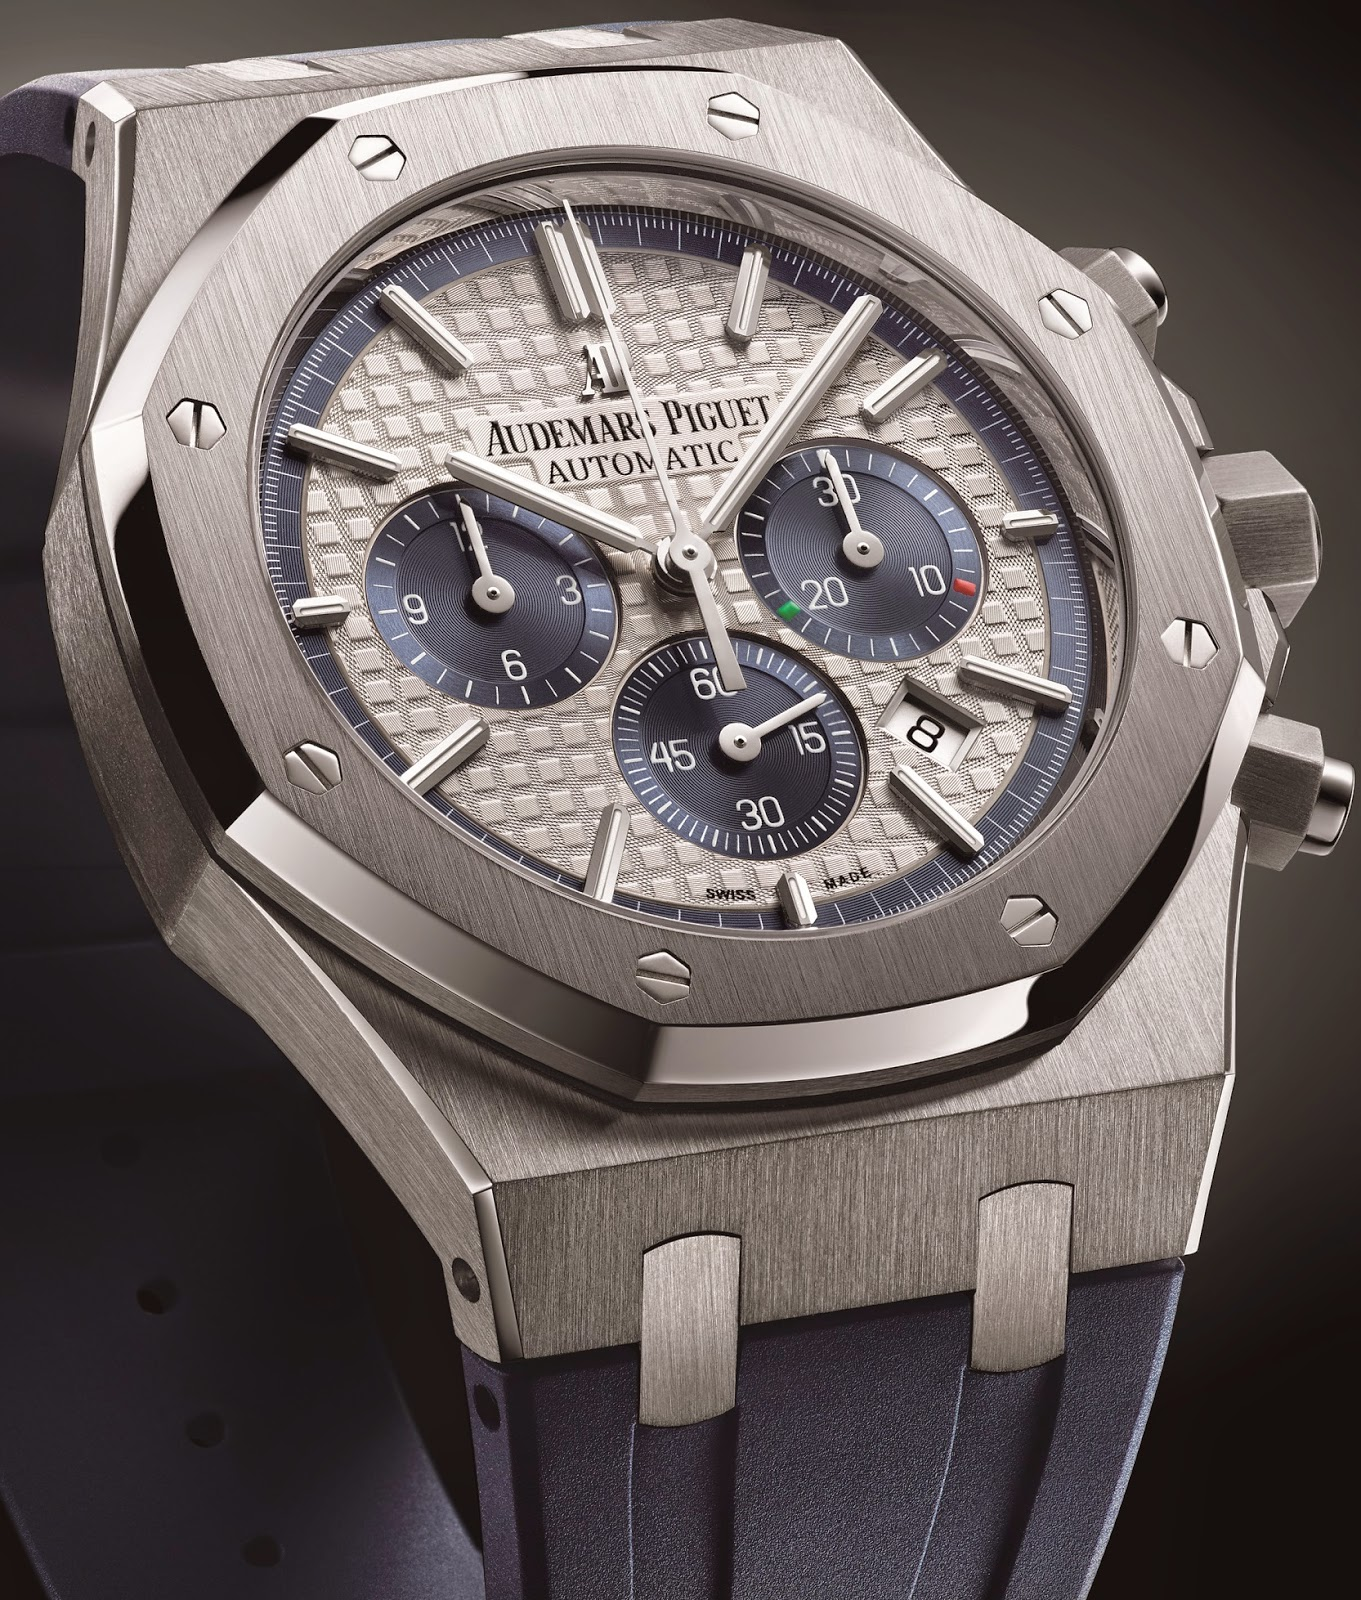 New Style Audemars Piguet Royal Oak Chronograph Limited Edition Replica Watch